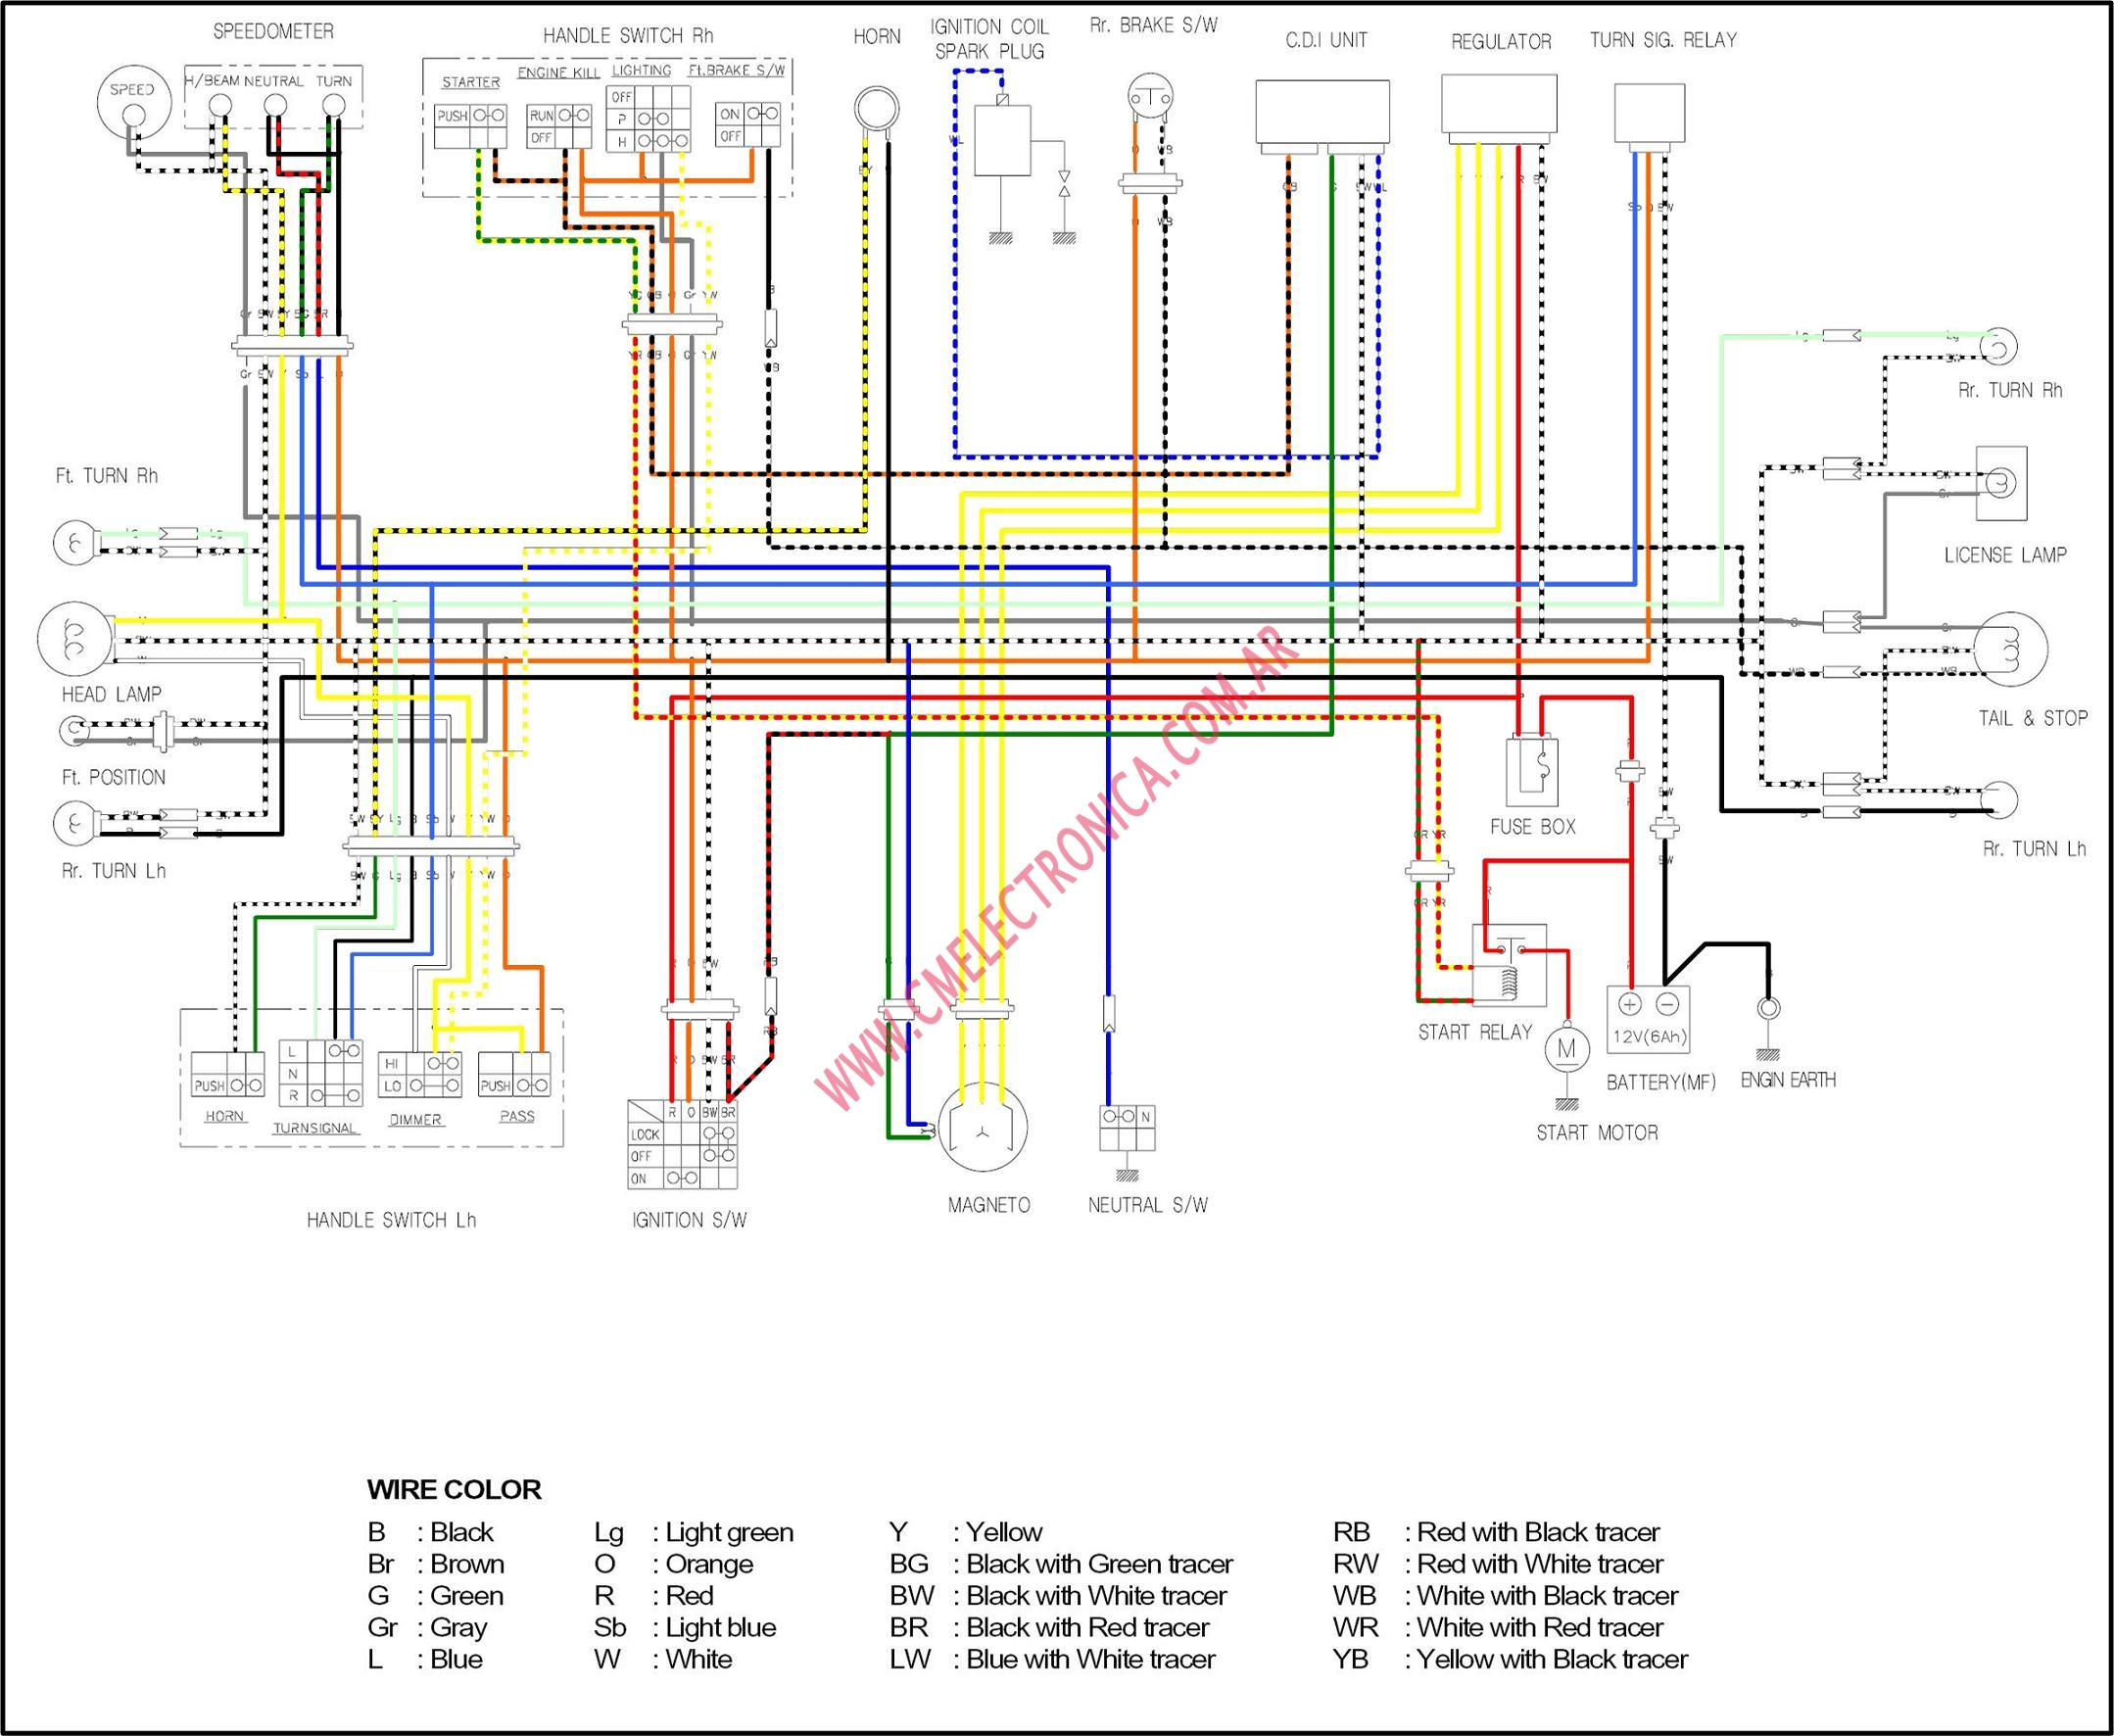 Kawasaki Brute Force 750 Wiring Diagram on kawasaki motorcycle wiring diagrams